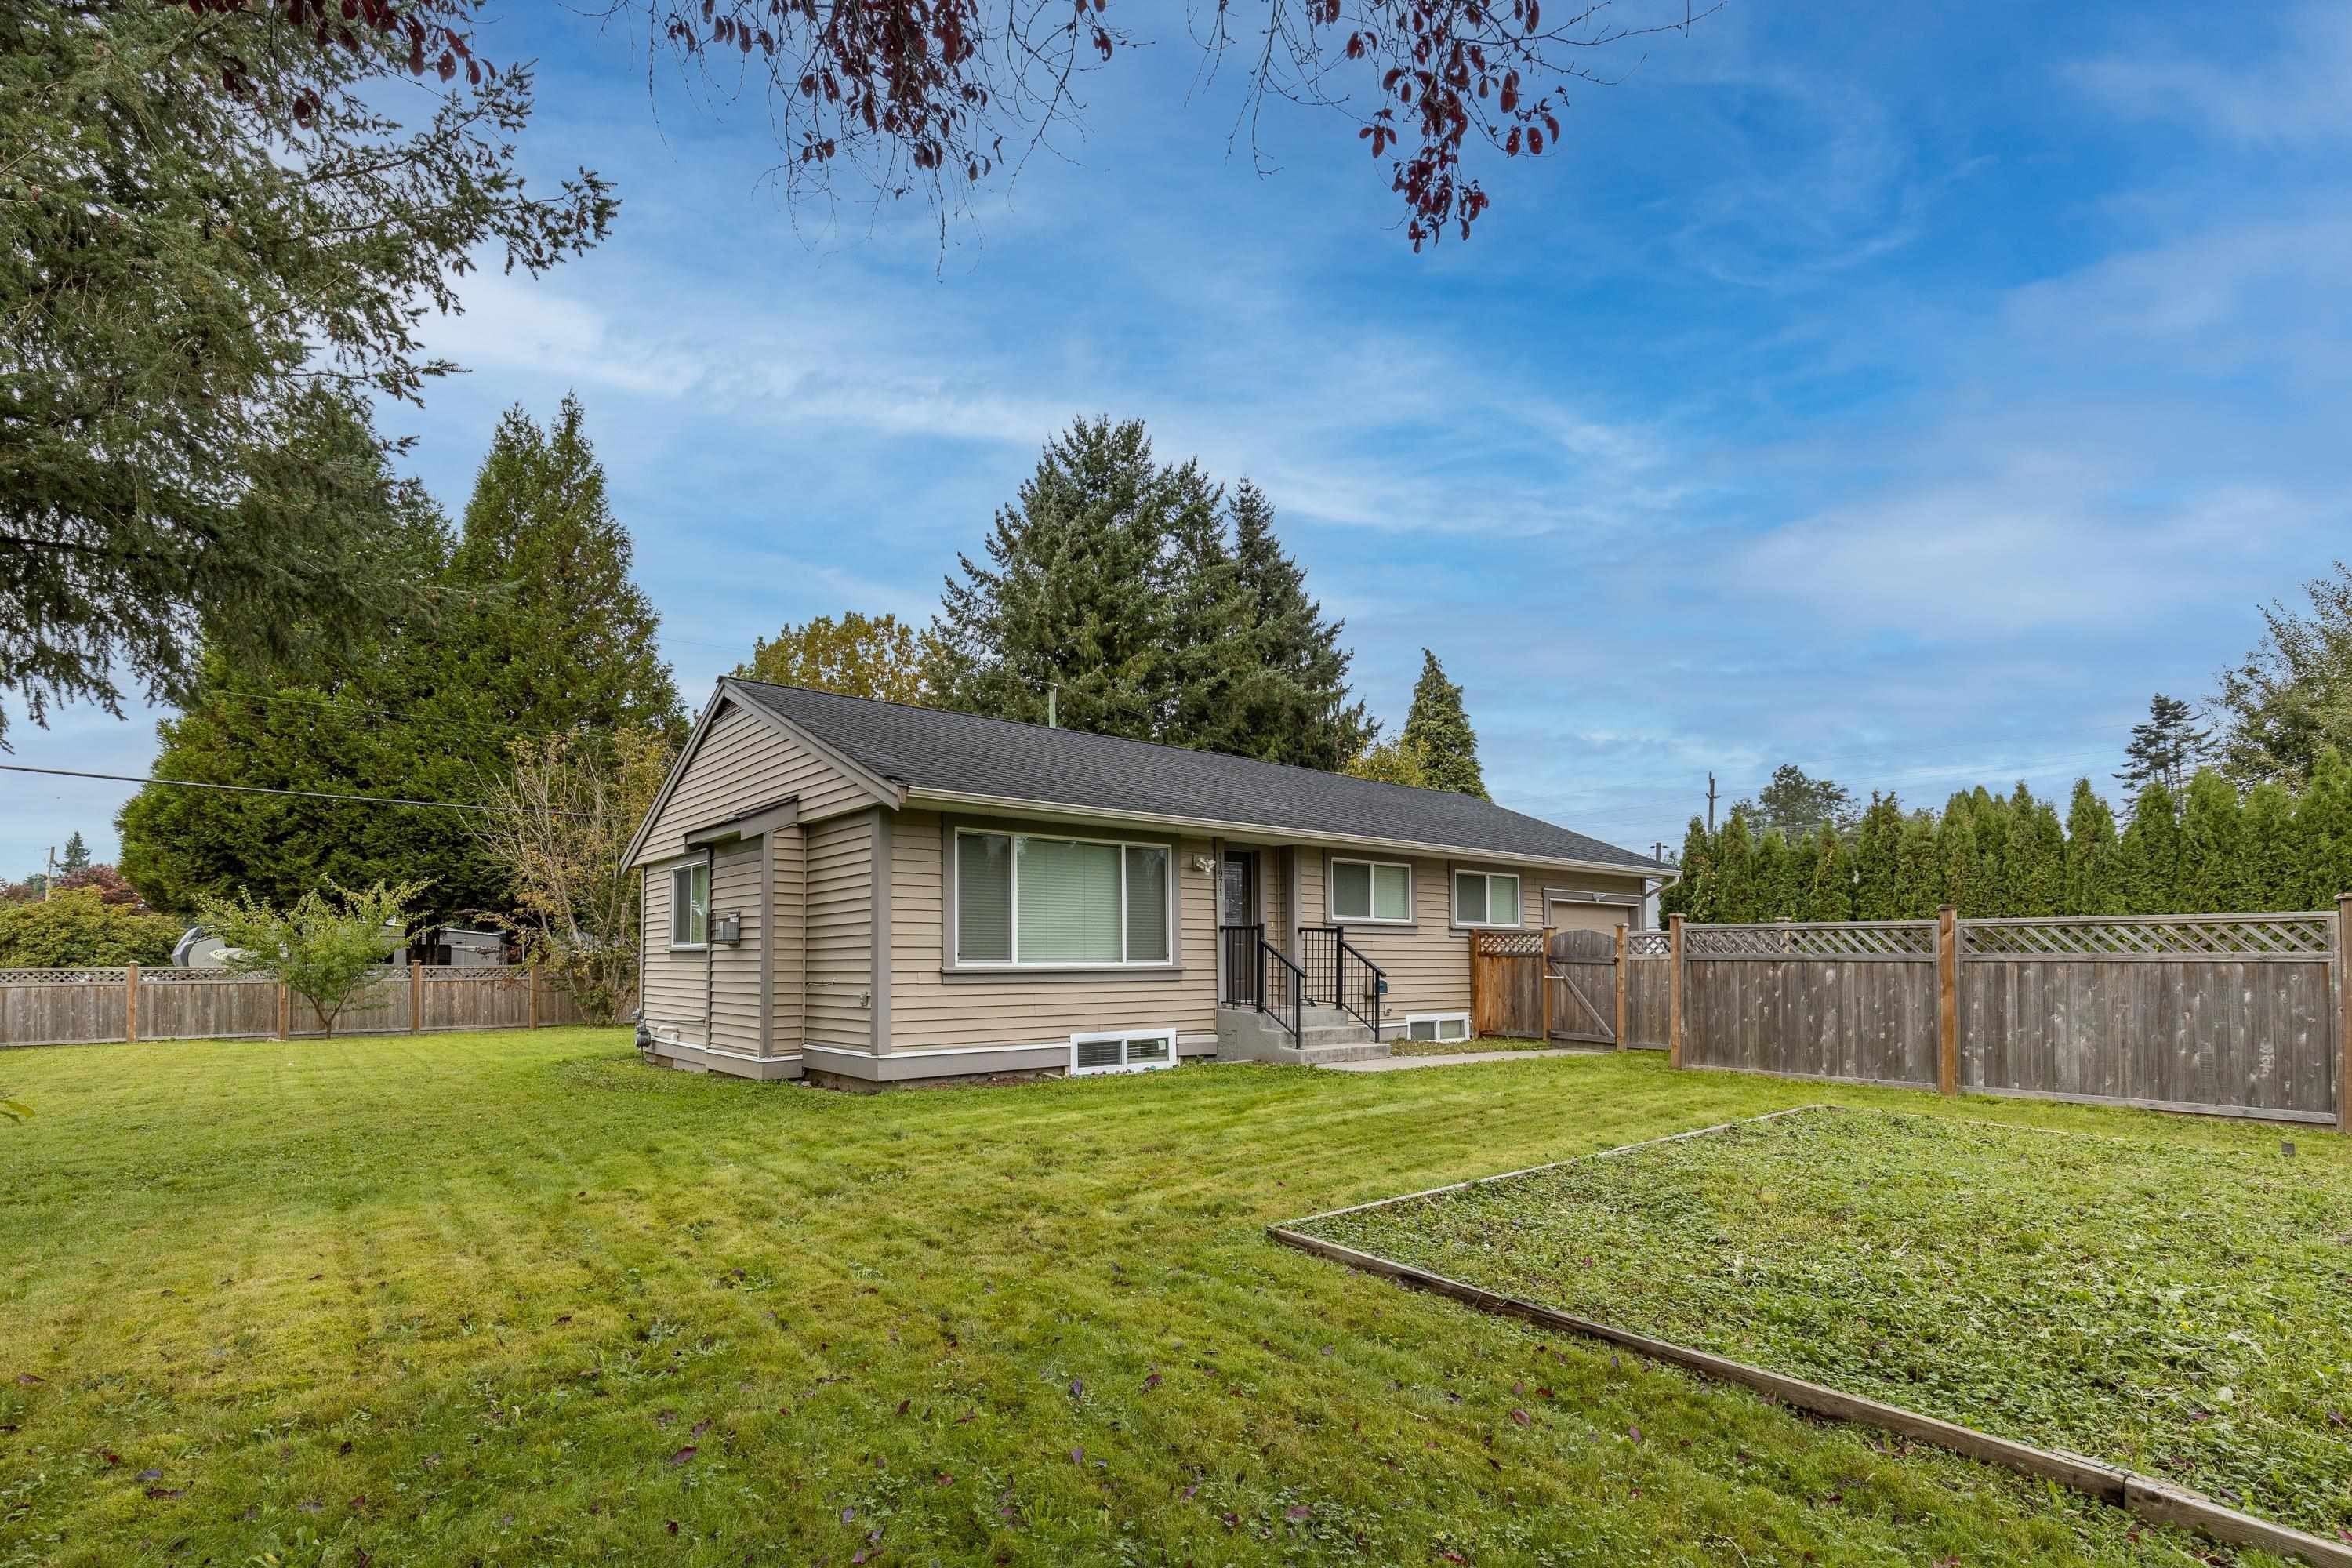 Main Photo: 11971 220 Street in Maple Ridge: West Central House for sale : MLS®# R2624040